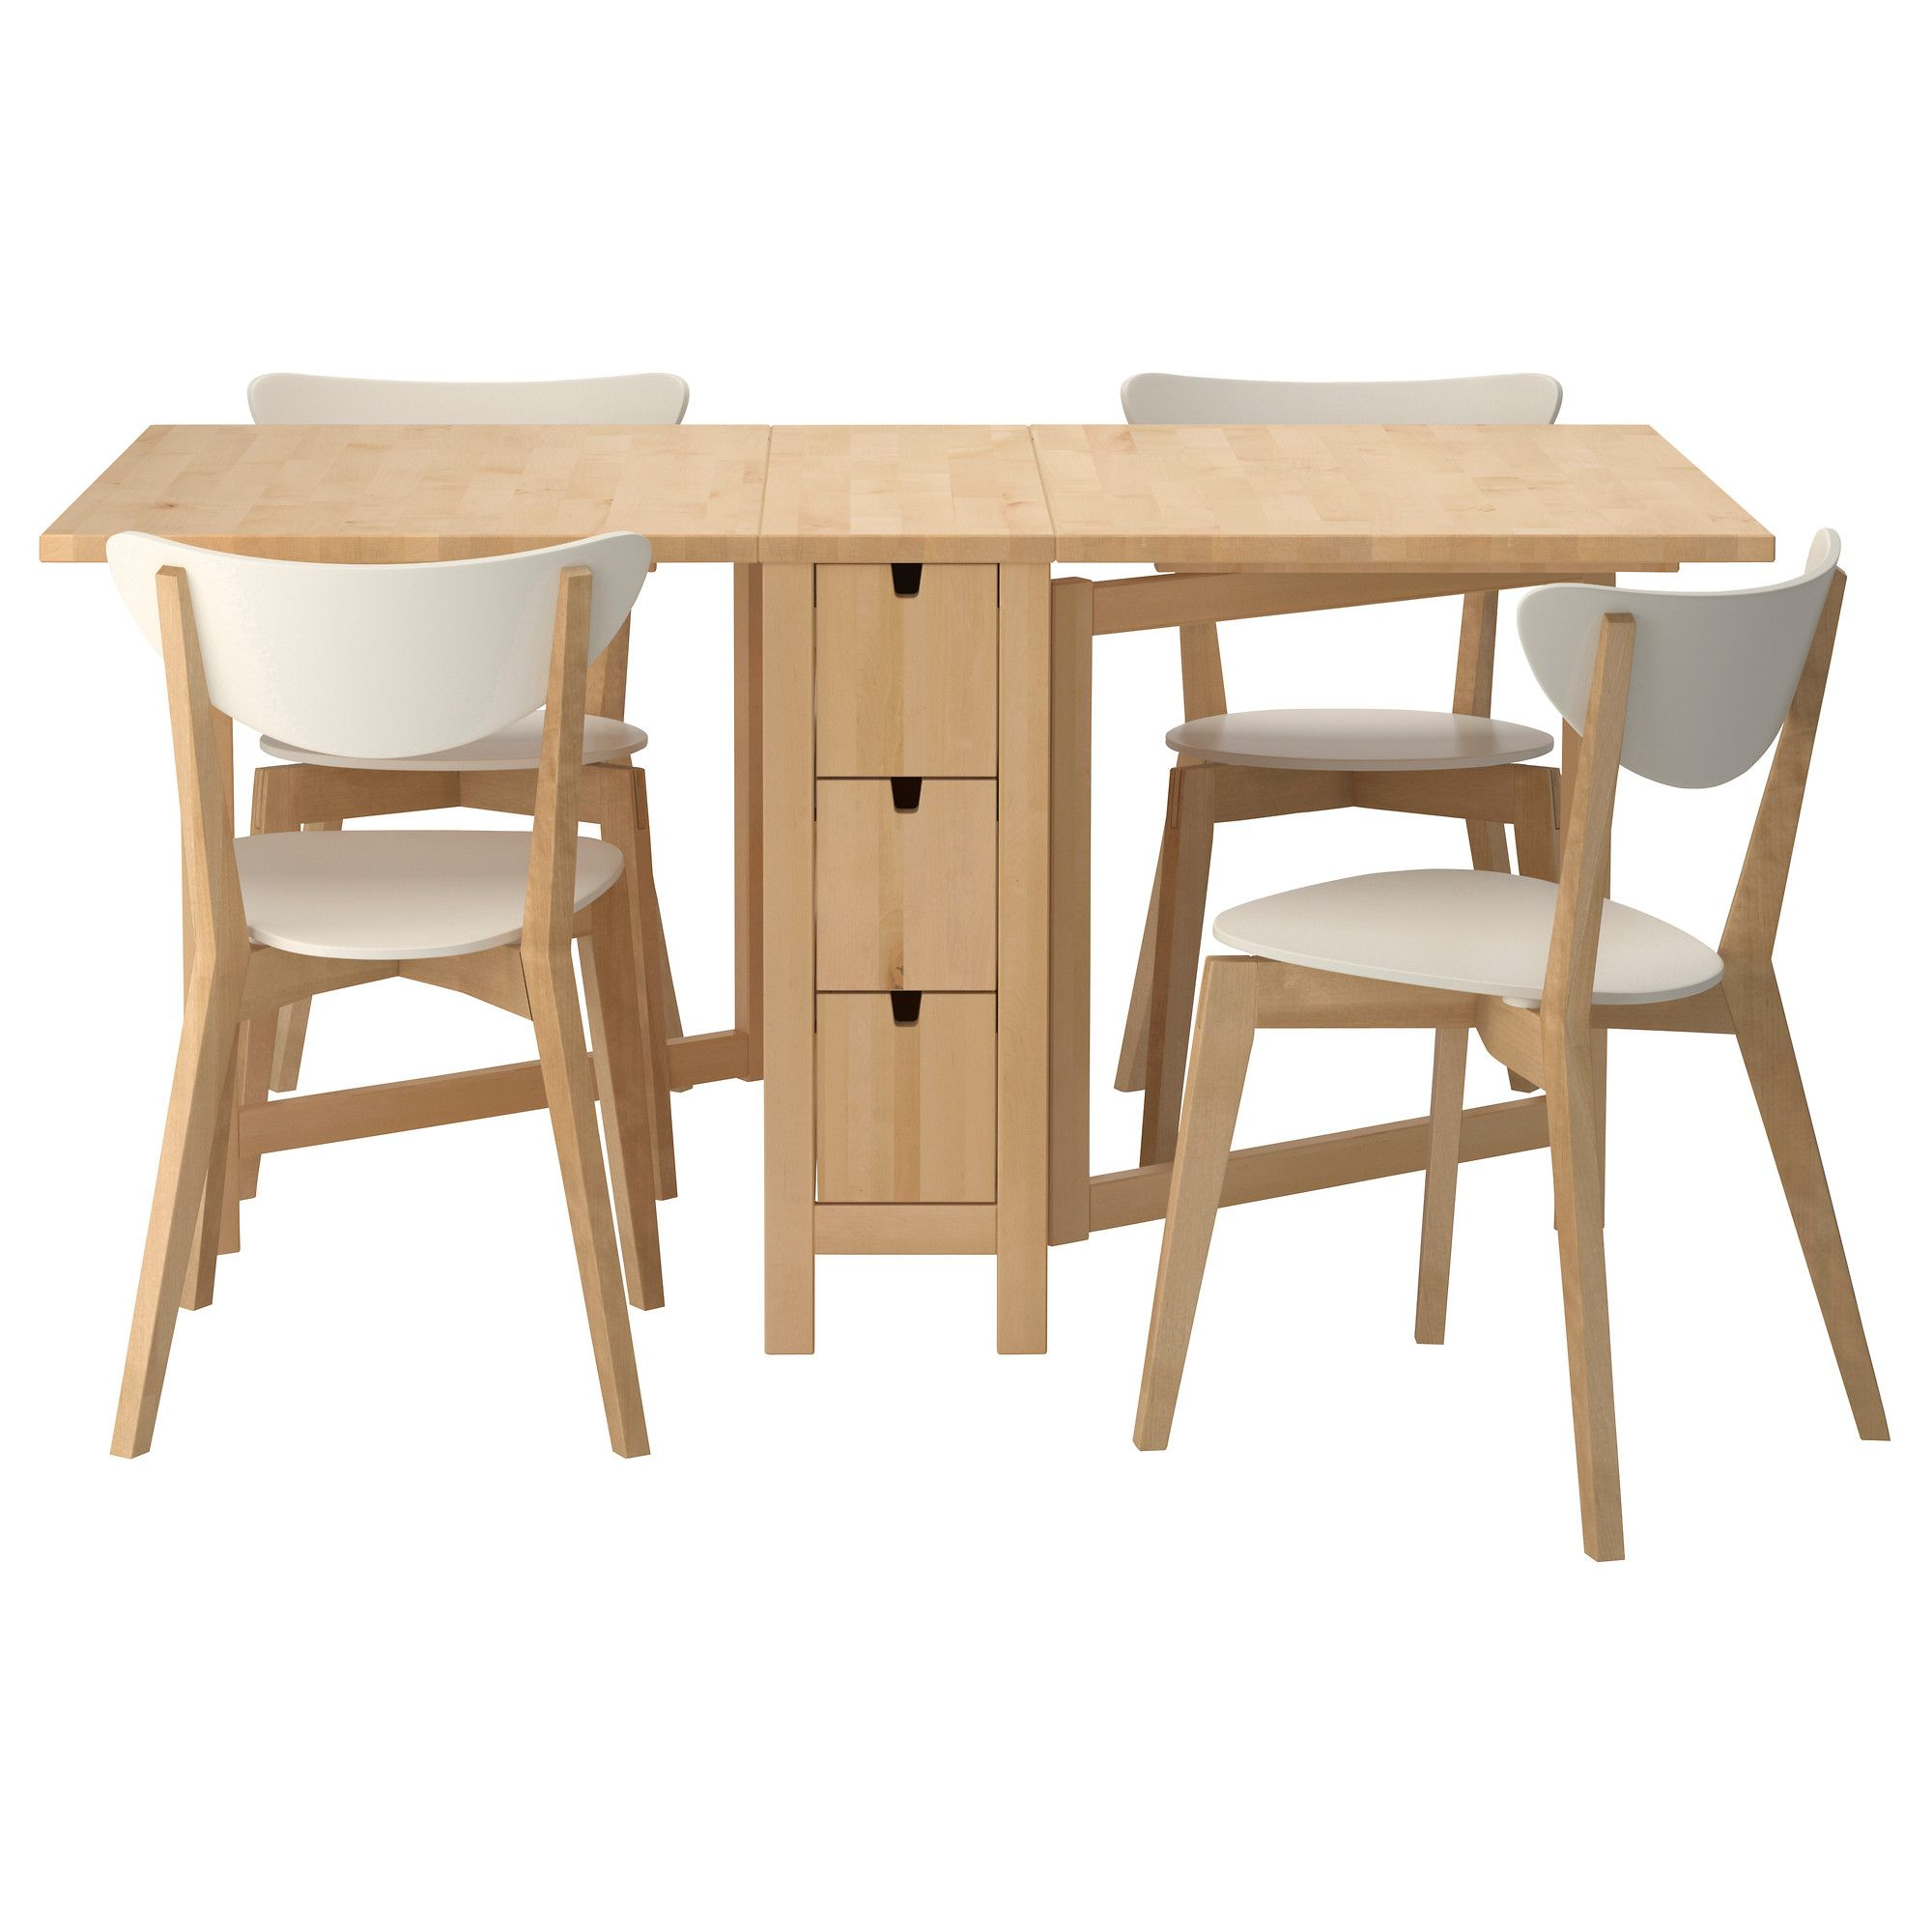 Apartment folding kitchen table are perfect for your limited space interior exterior ideas Restaining kitchen table